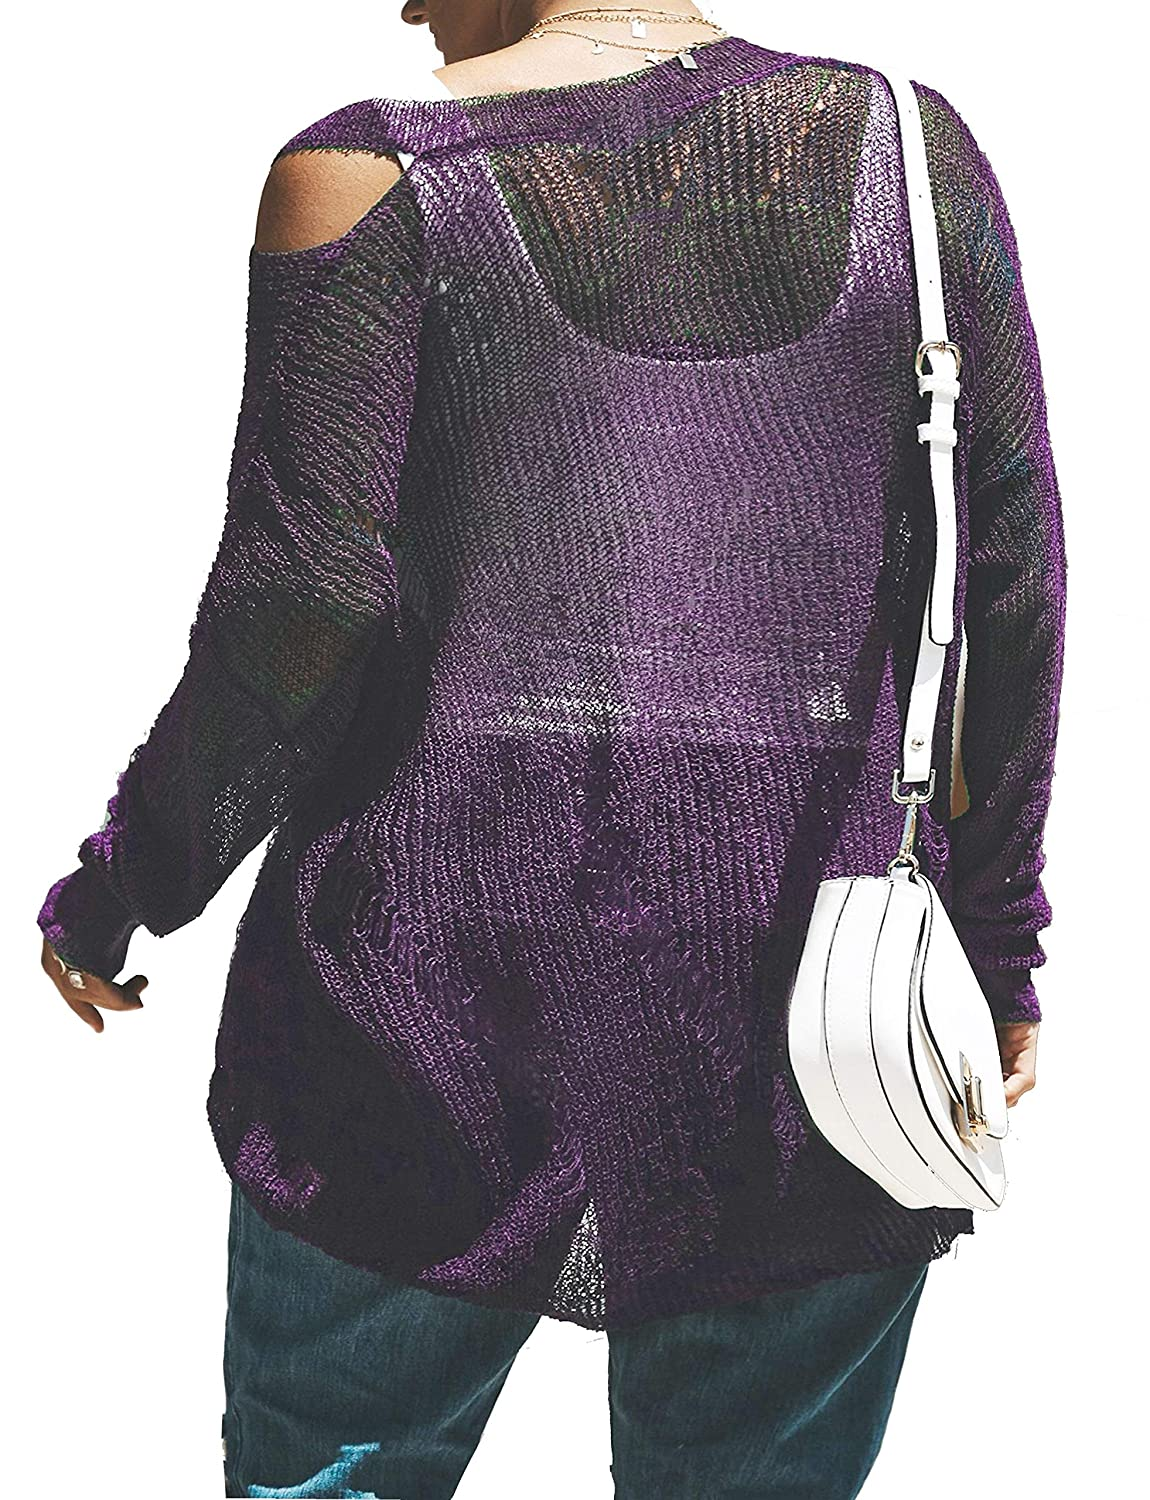 99516661aa8 YSkkt Womens Tops Cold Shoulder Plus Size Oversized Sweaters Cable Knit  Pullover Baggy Slouchy Long Sleeve